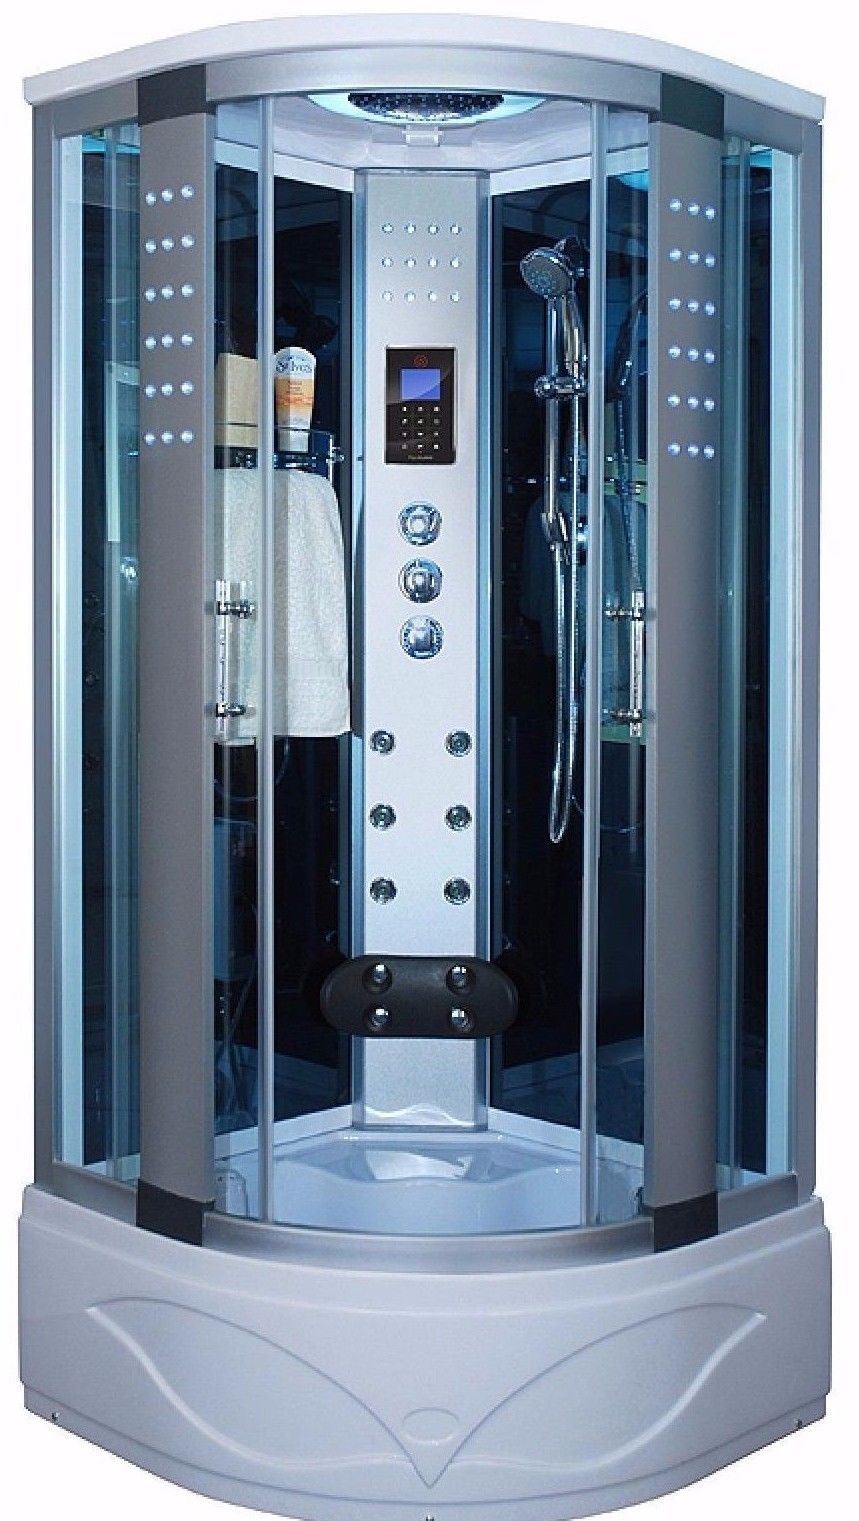 1001 NOW Corner Steam Shower Room Enclosure 36 x 36 8004-AS | Home ...